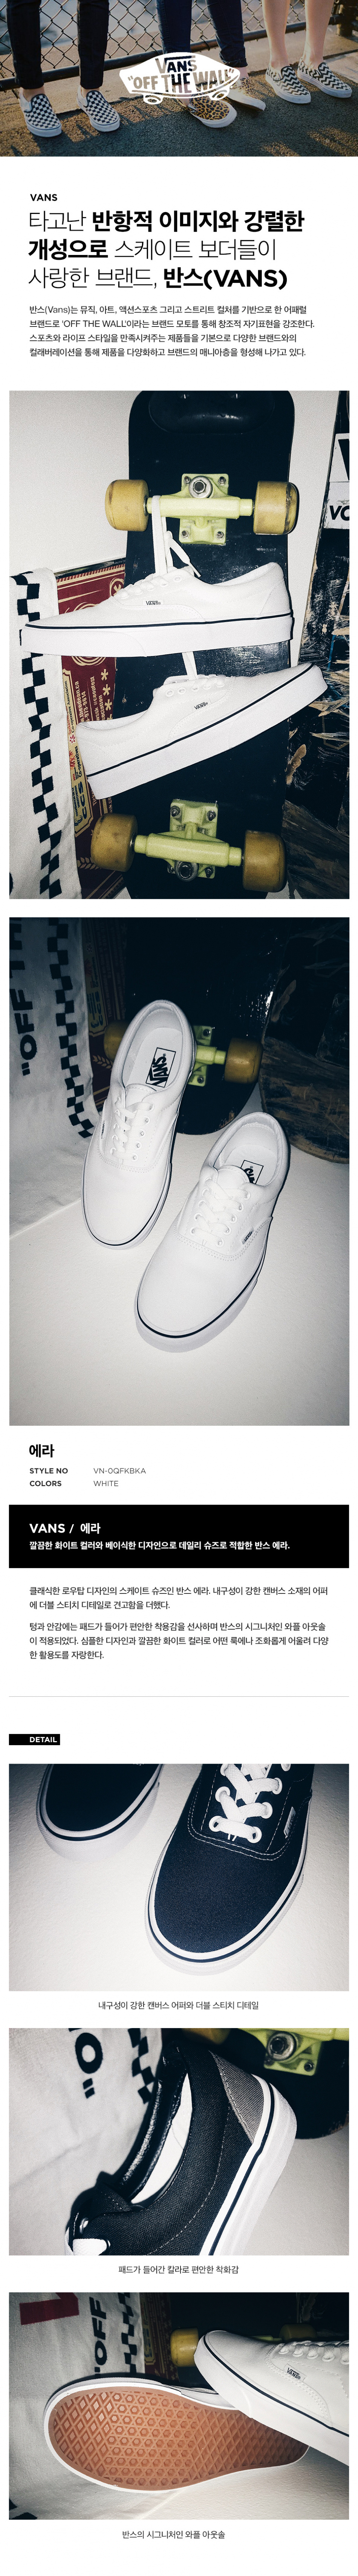 반스(VANS) 에라 / VN-0EWZW00 / ERA TRUE WHITE